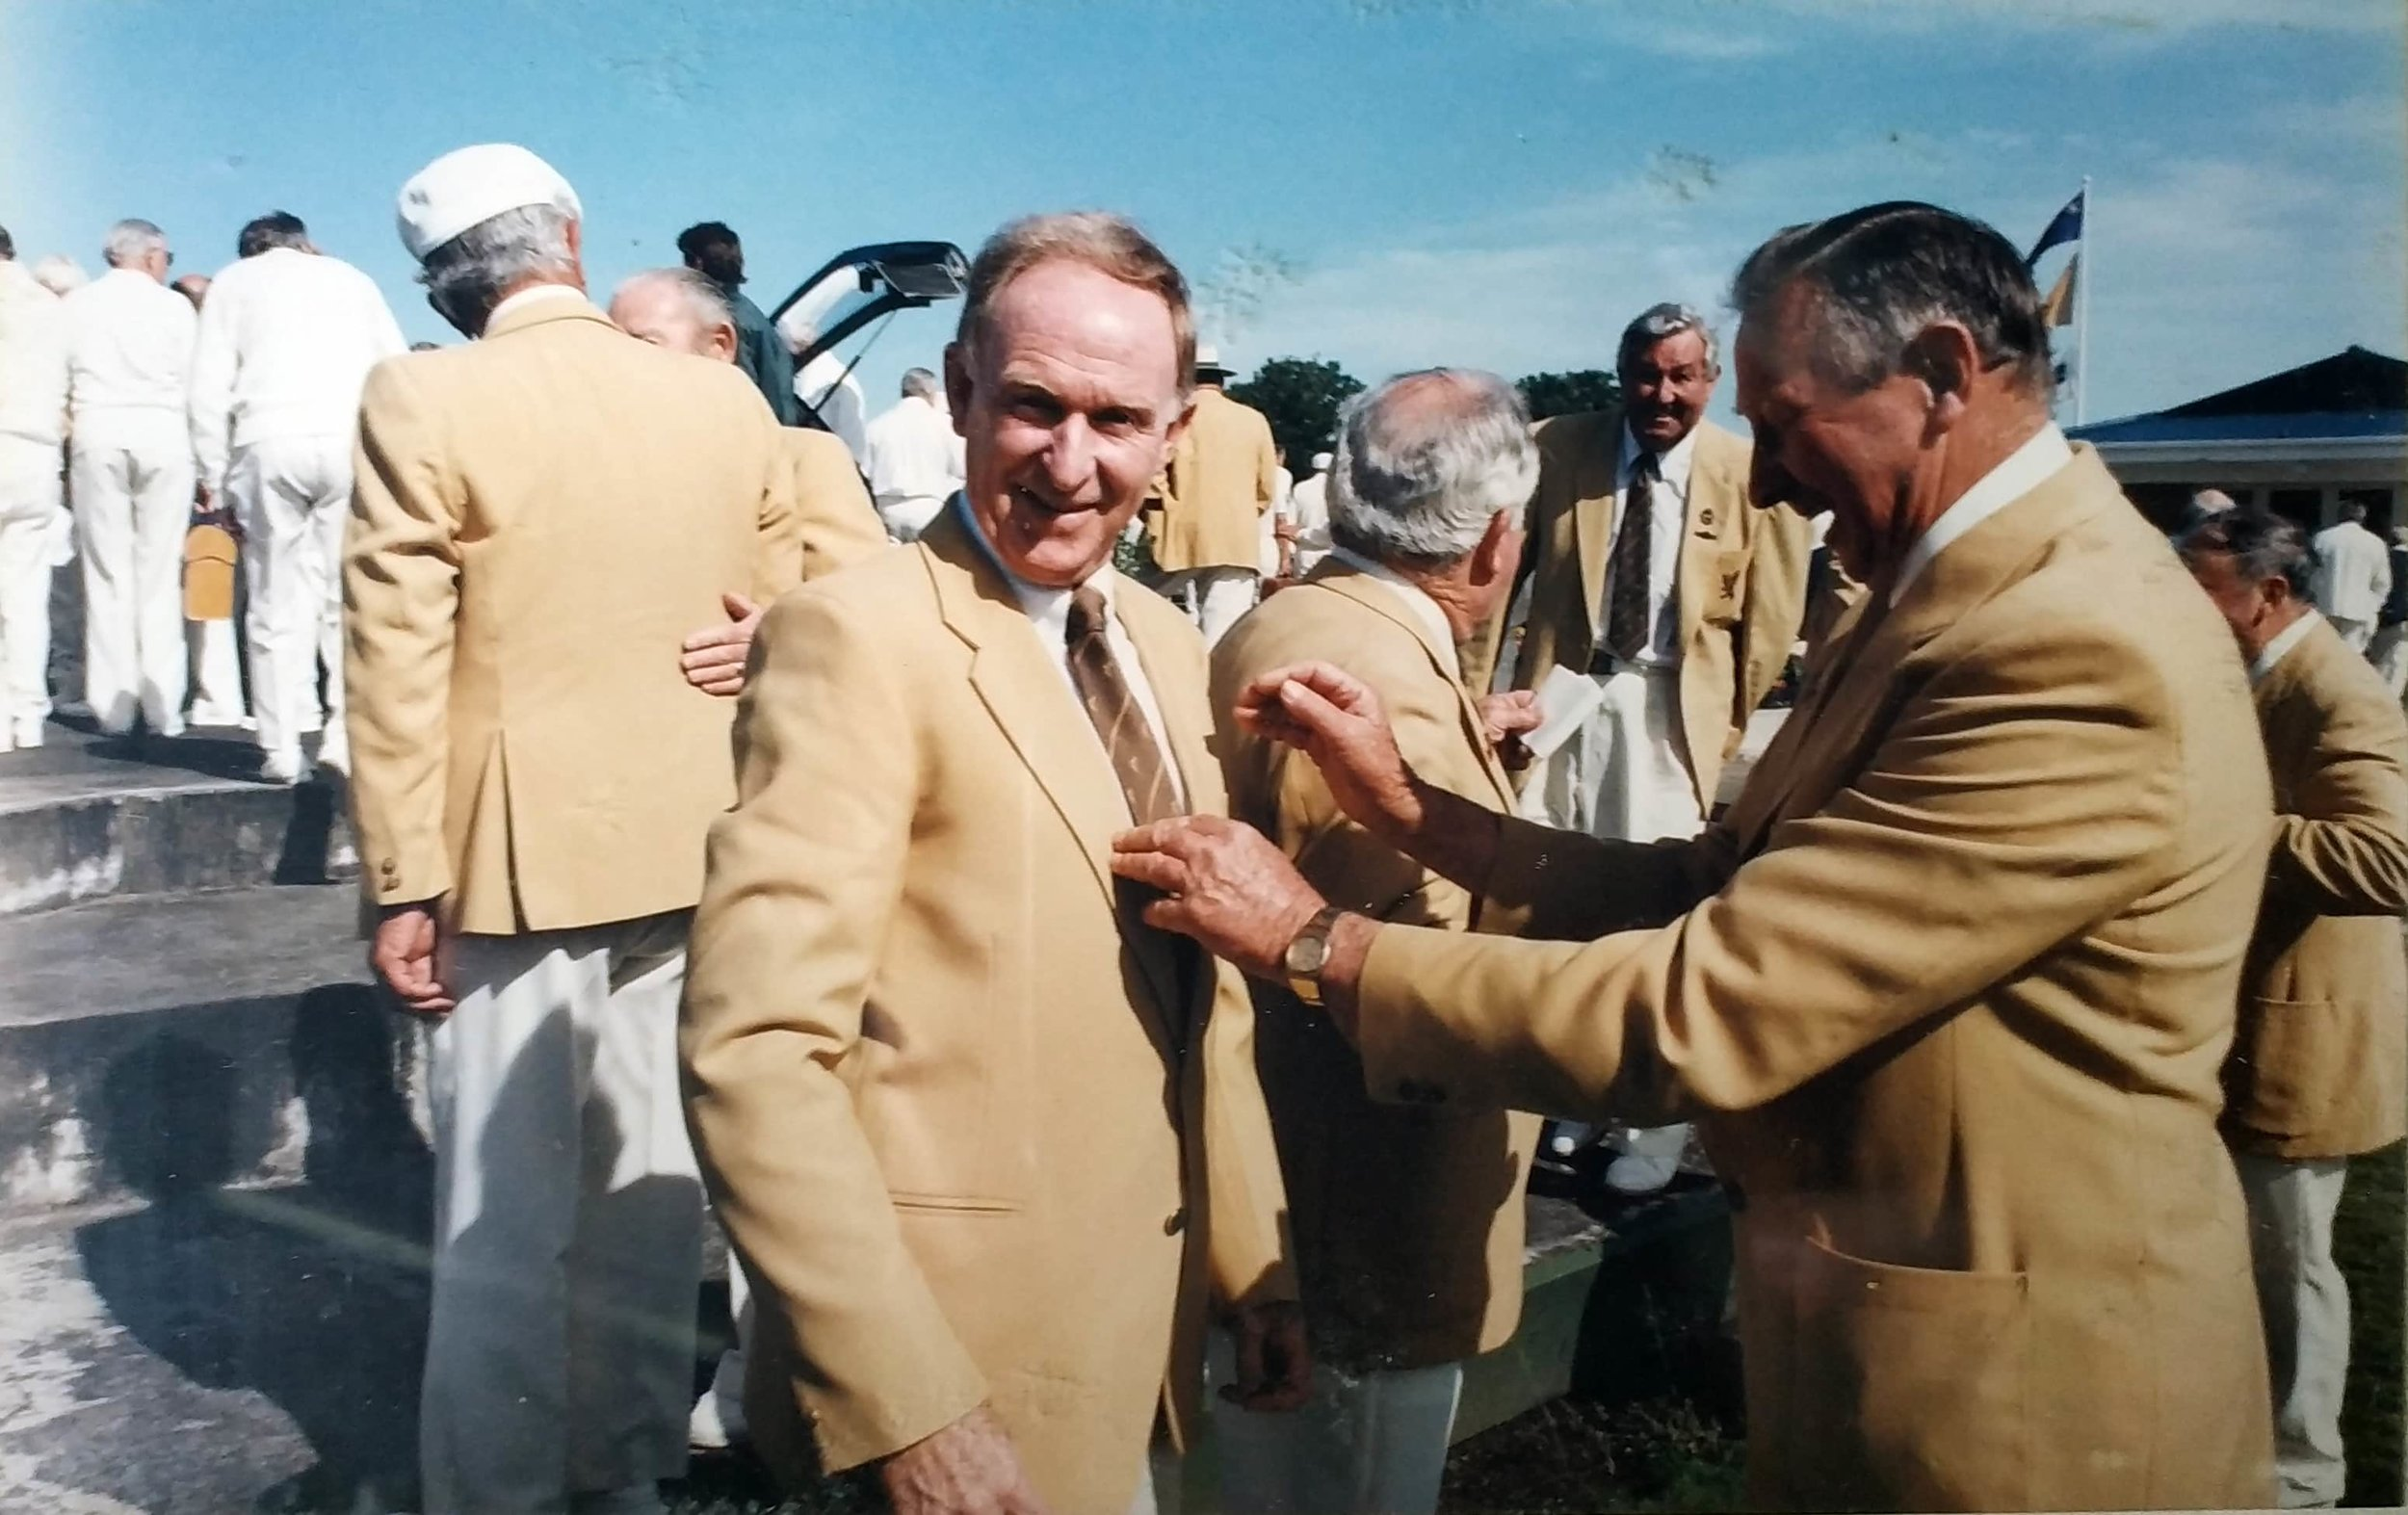 Sir Murray Halberg trying on his blazer. Sir Murray is a long distance runner that won gold at the 1960 Olympics for 5000m, and is the founder of the Halberg Disability Sport Foundation. Photo credit: Royal Oak Bowls. 1992.